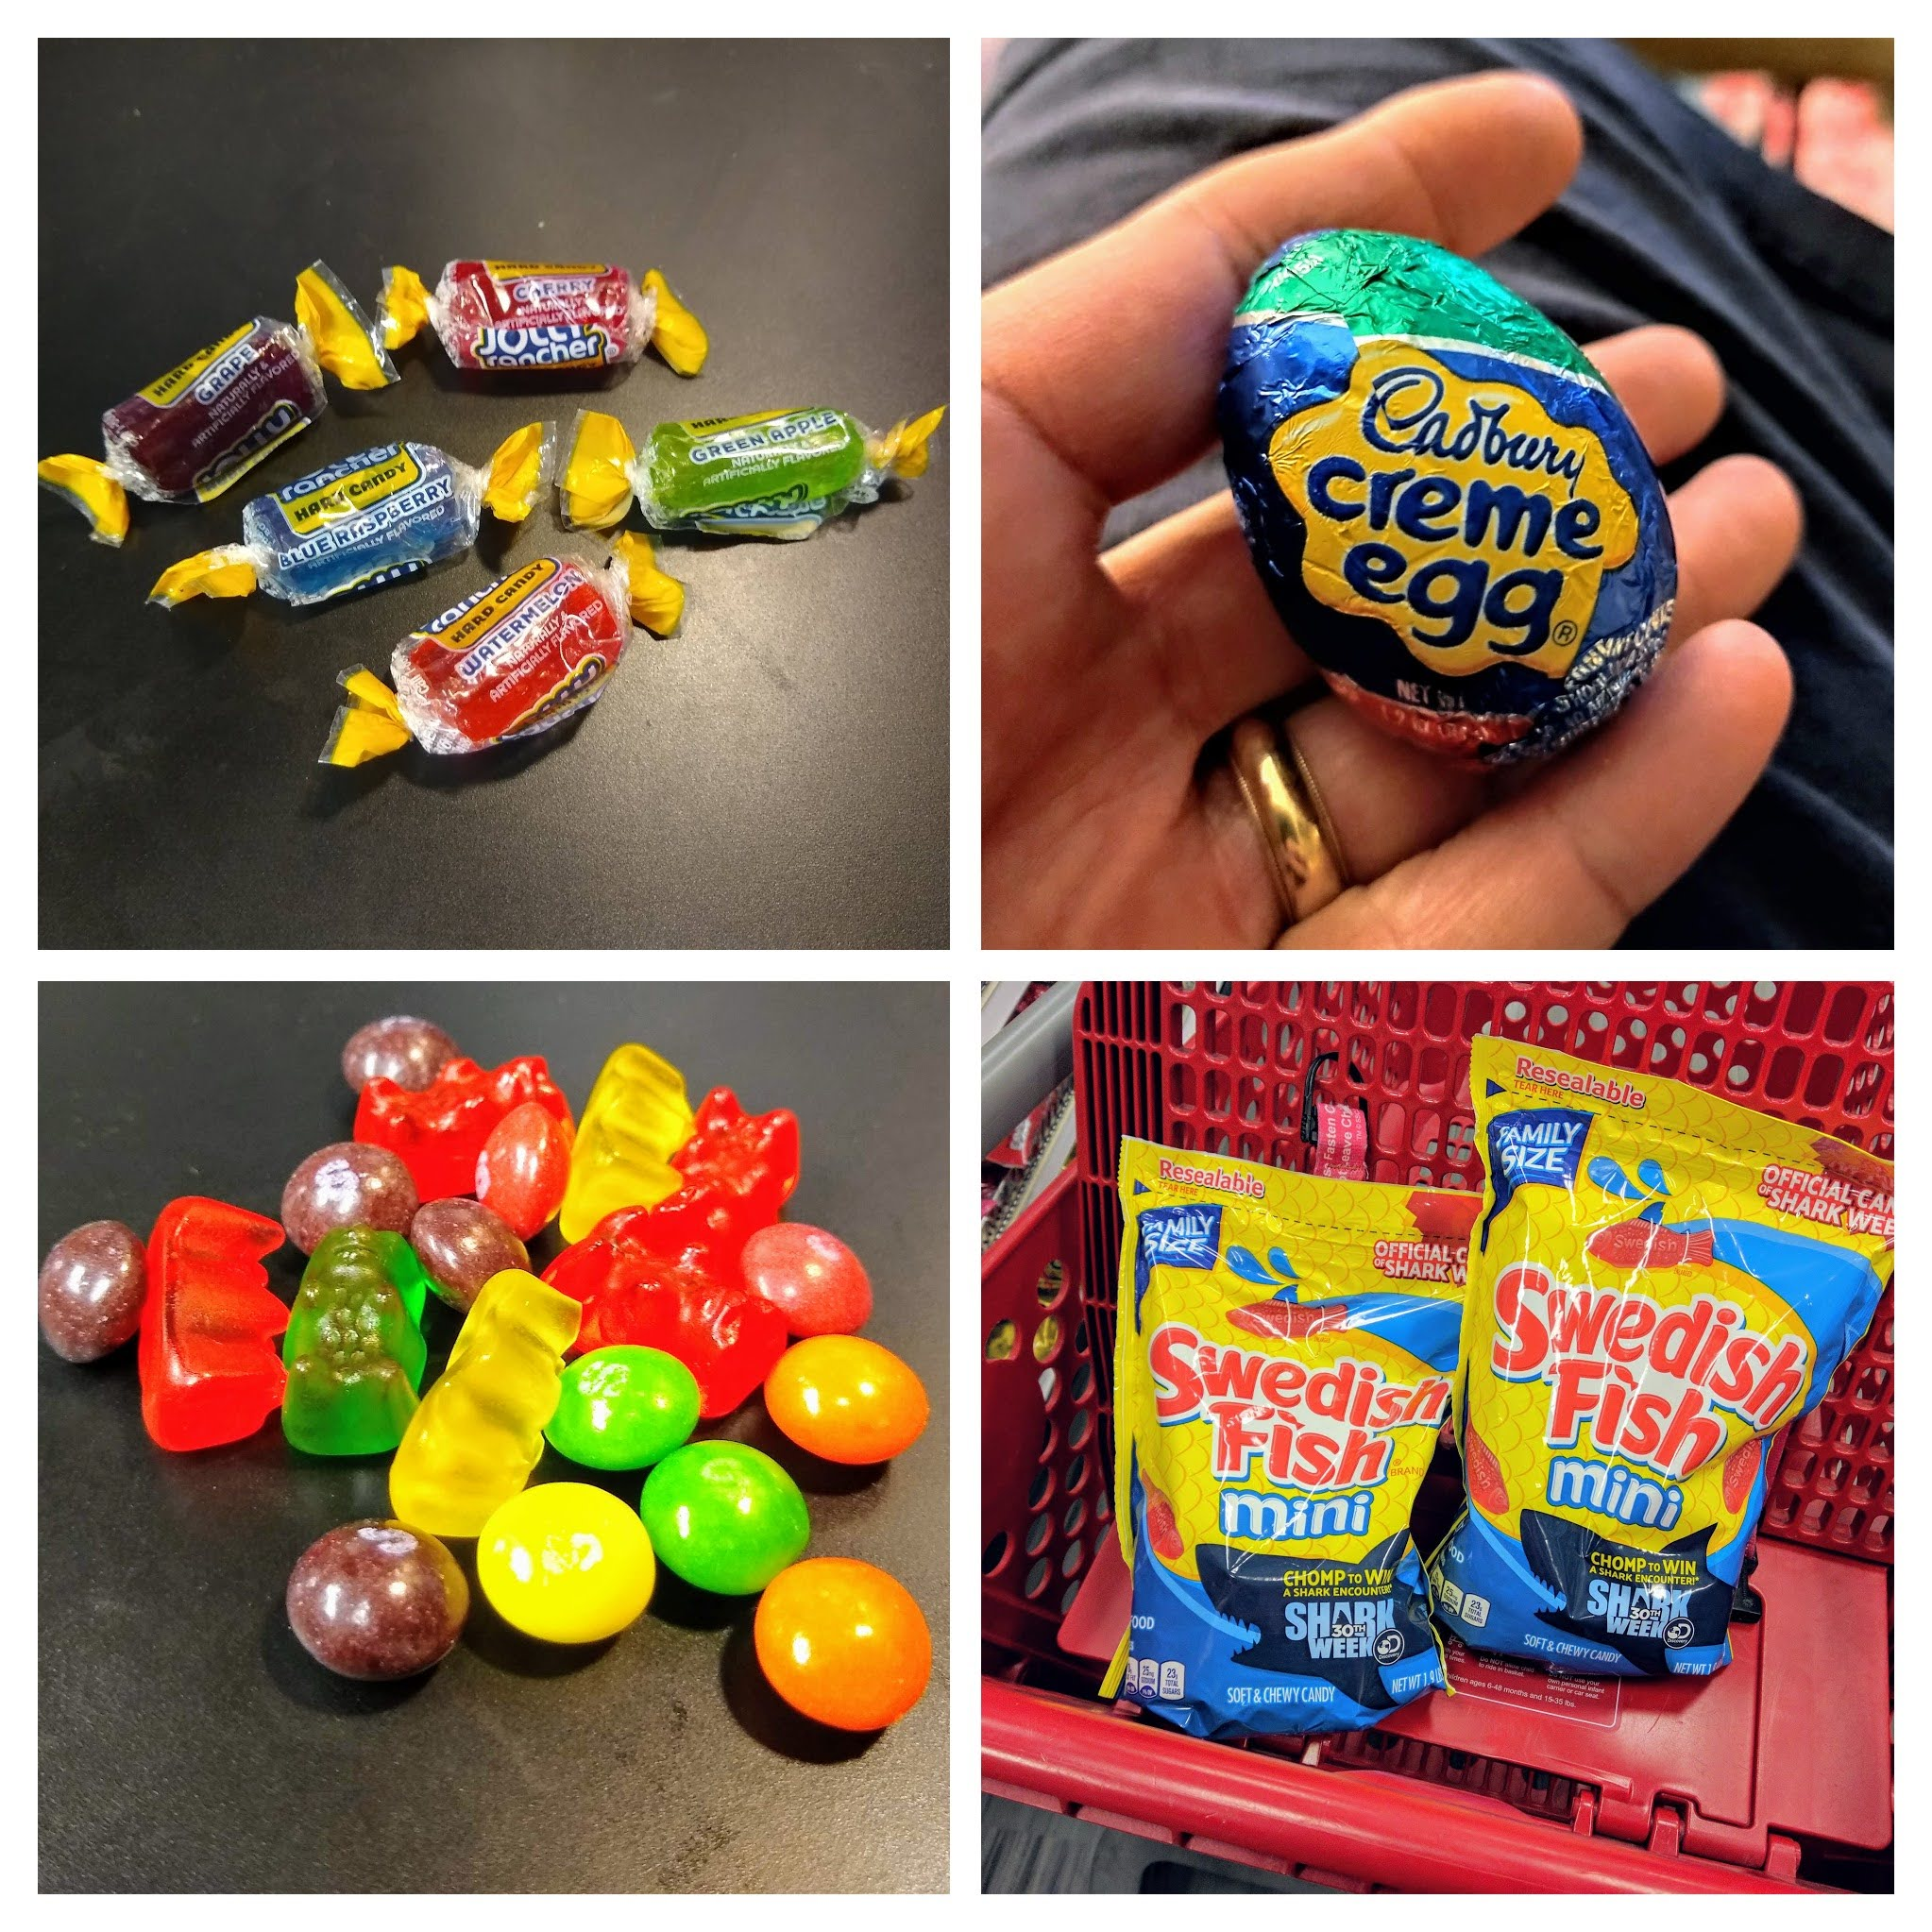 Tony's Top 10 Favorite Candy